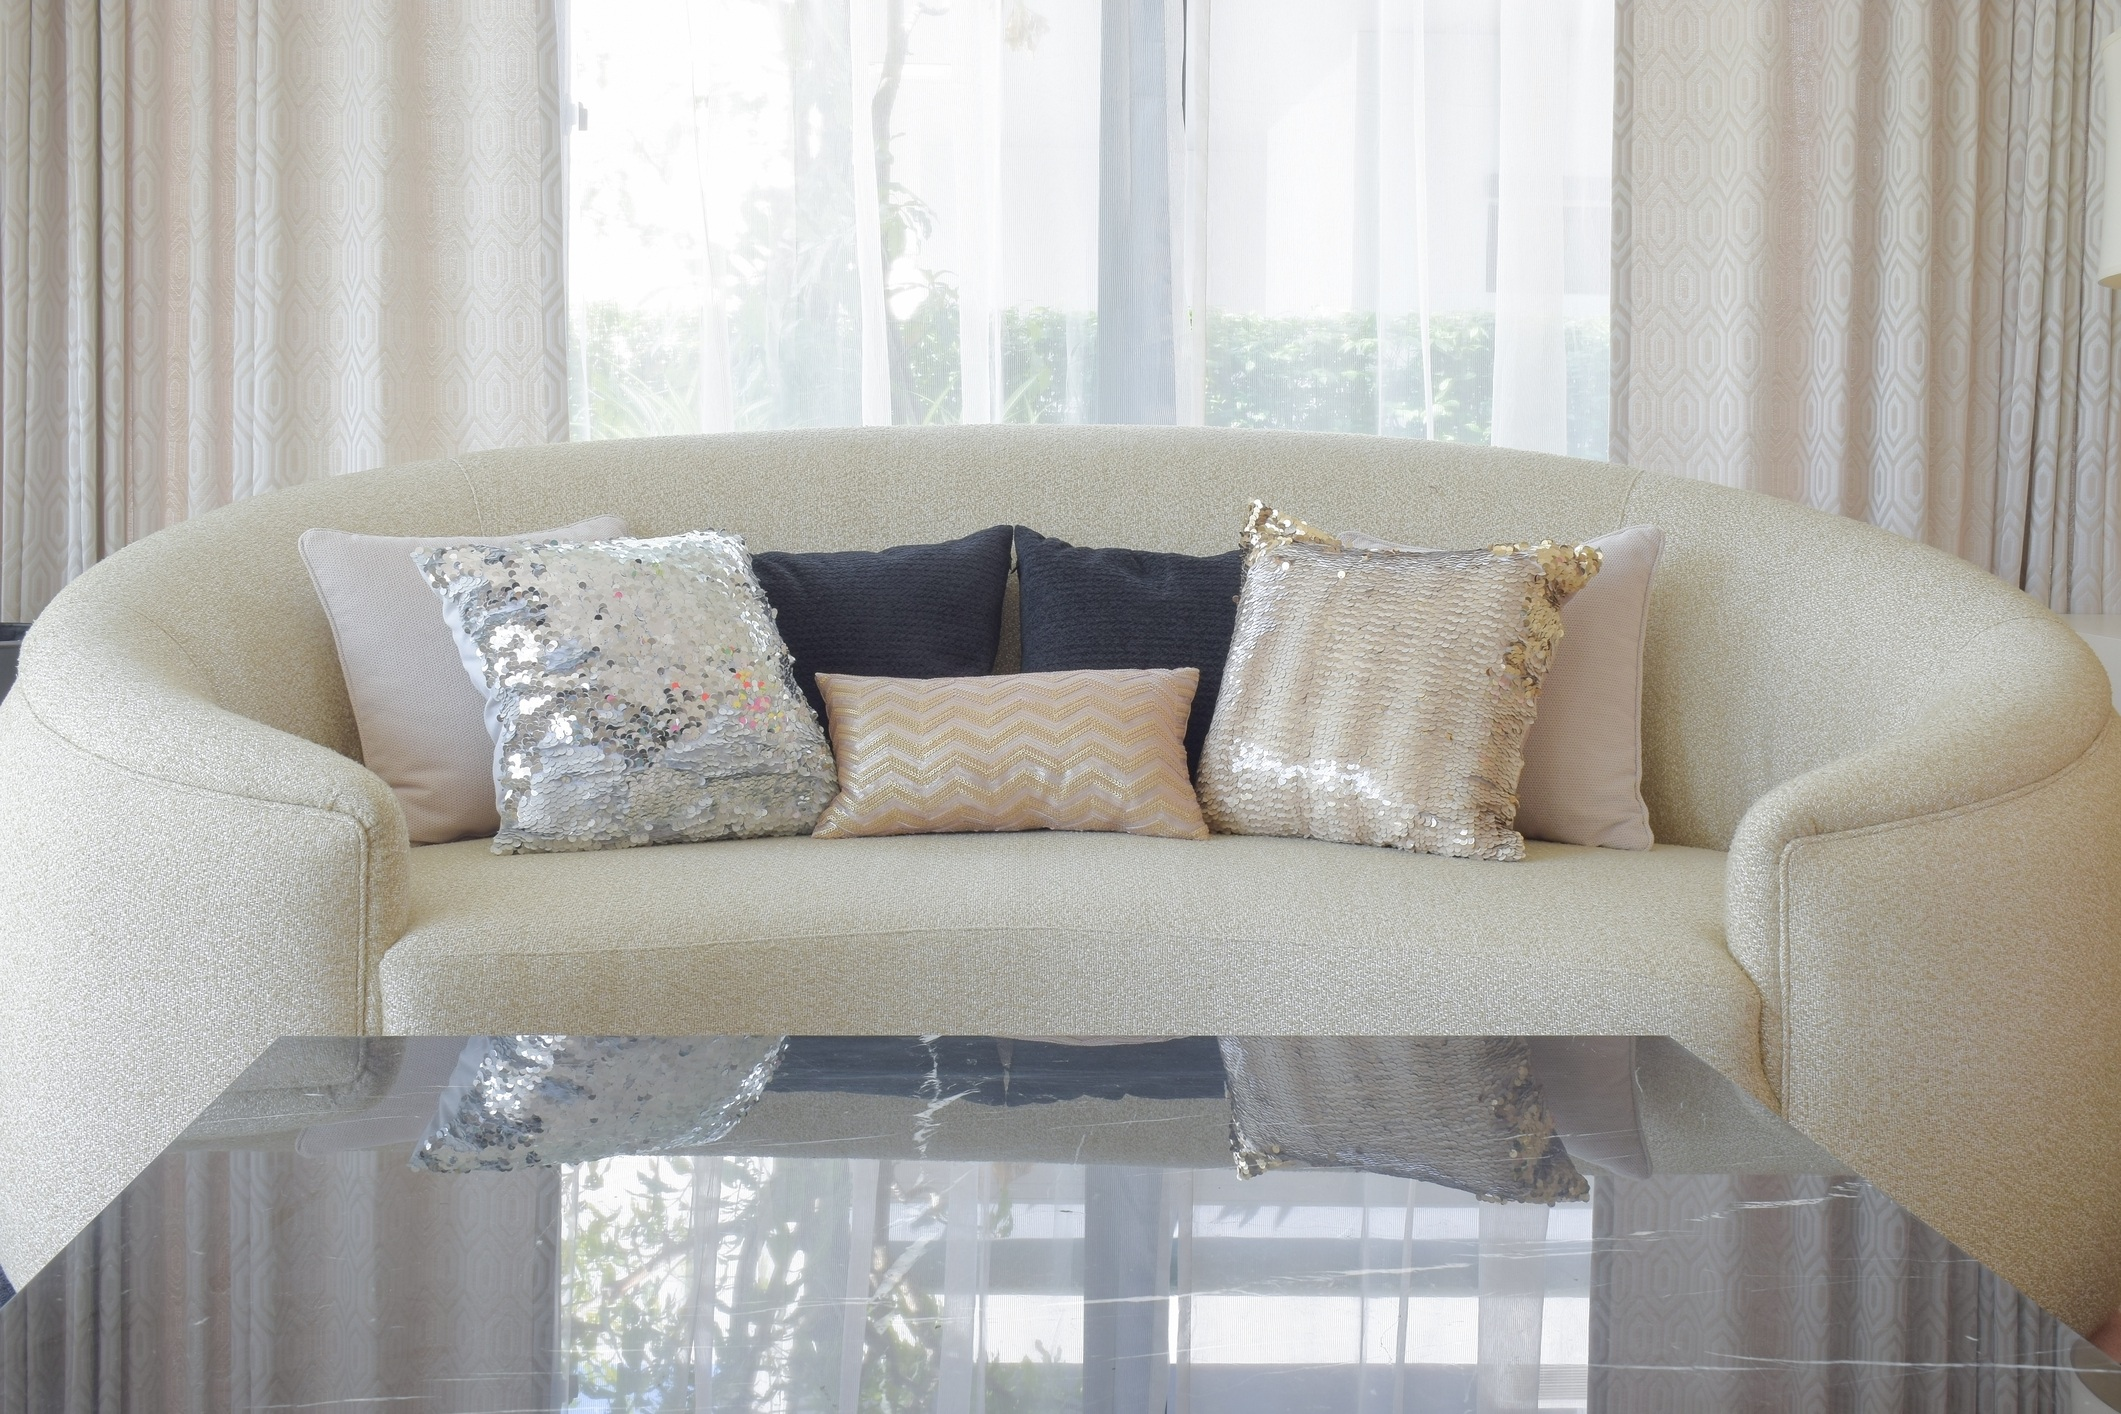 Round shape sofa with luxury style pillows and marble top table in foreground